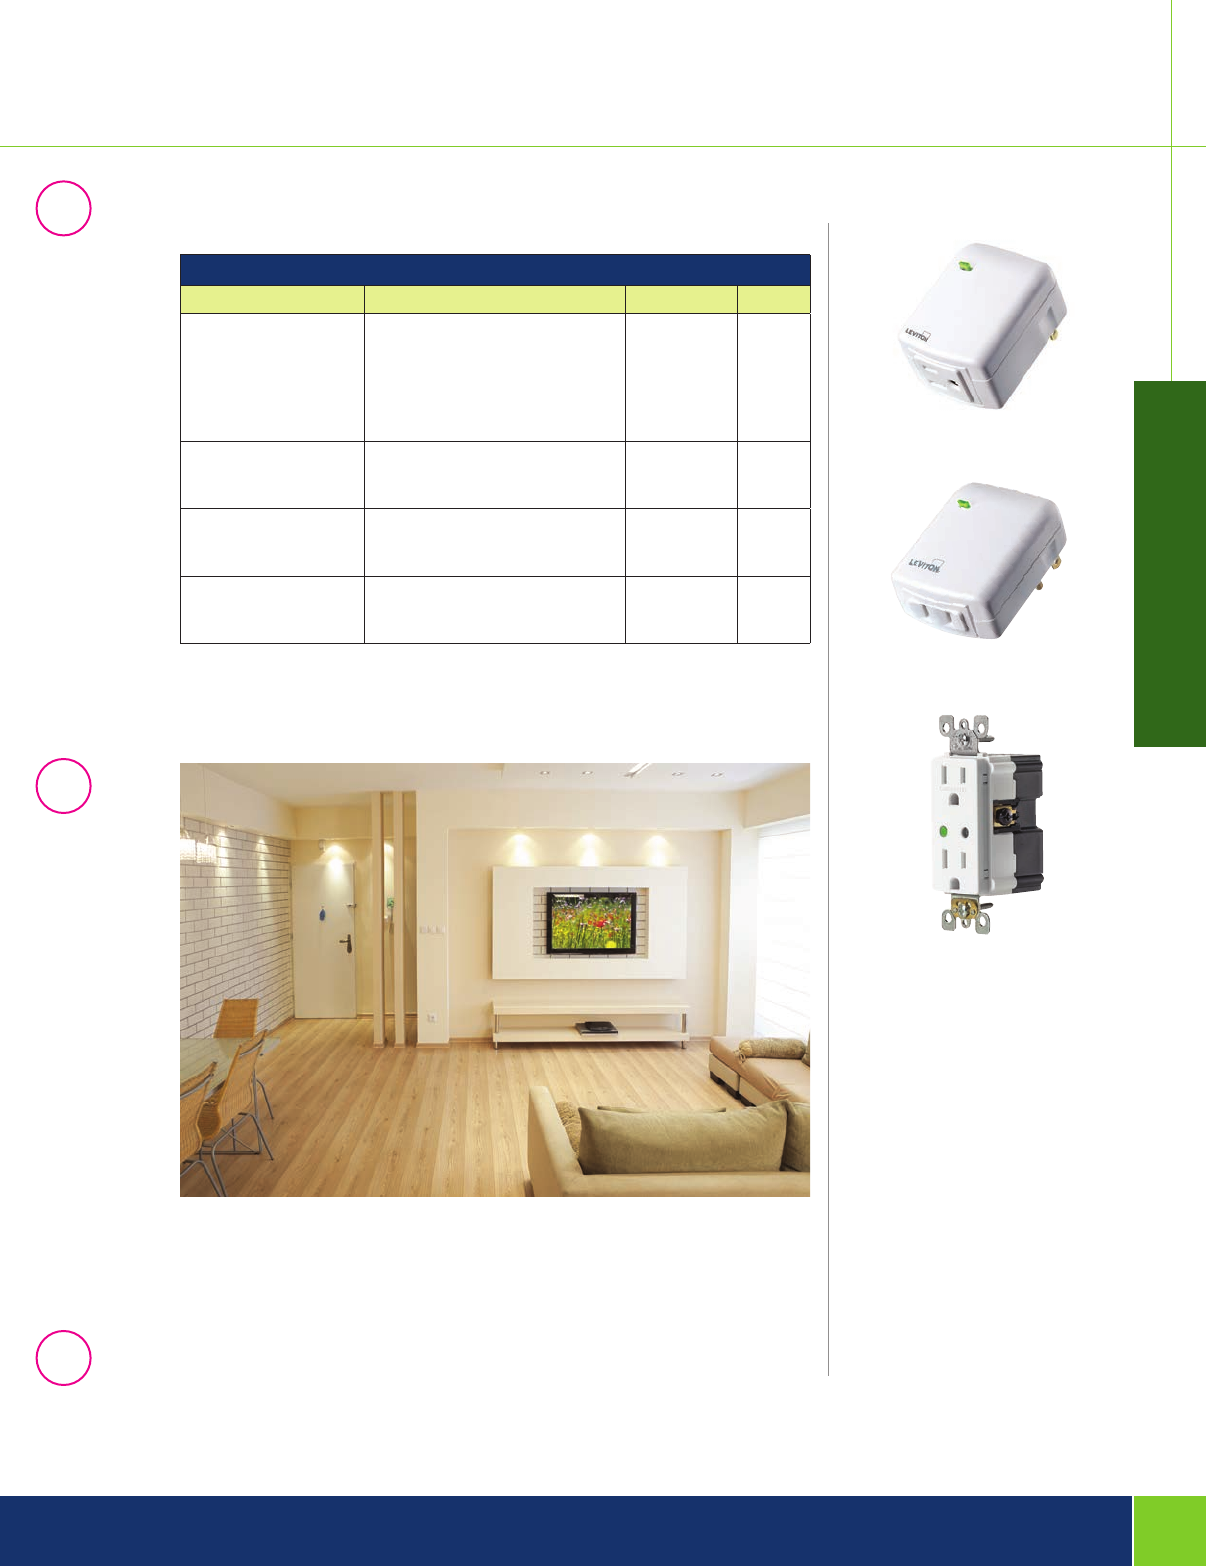 142907 Catalog Image Of Home Command Center Structured Wiring Panel With 1x8 Coax And 57